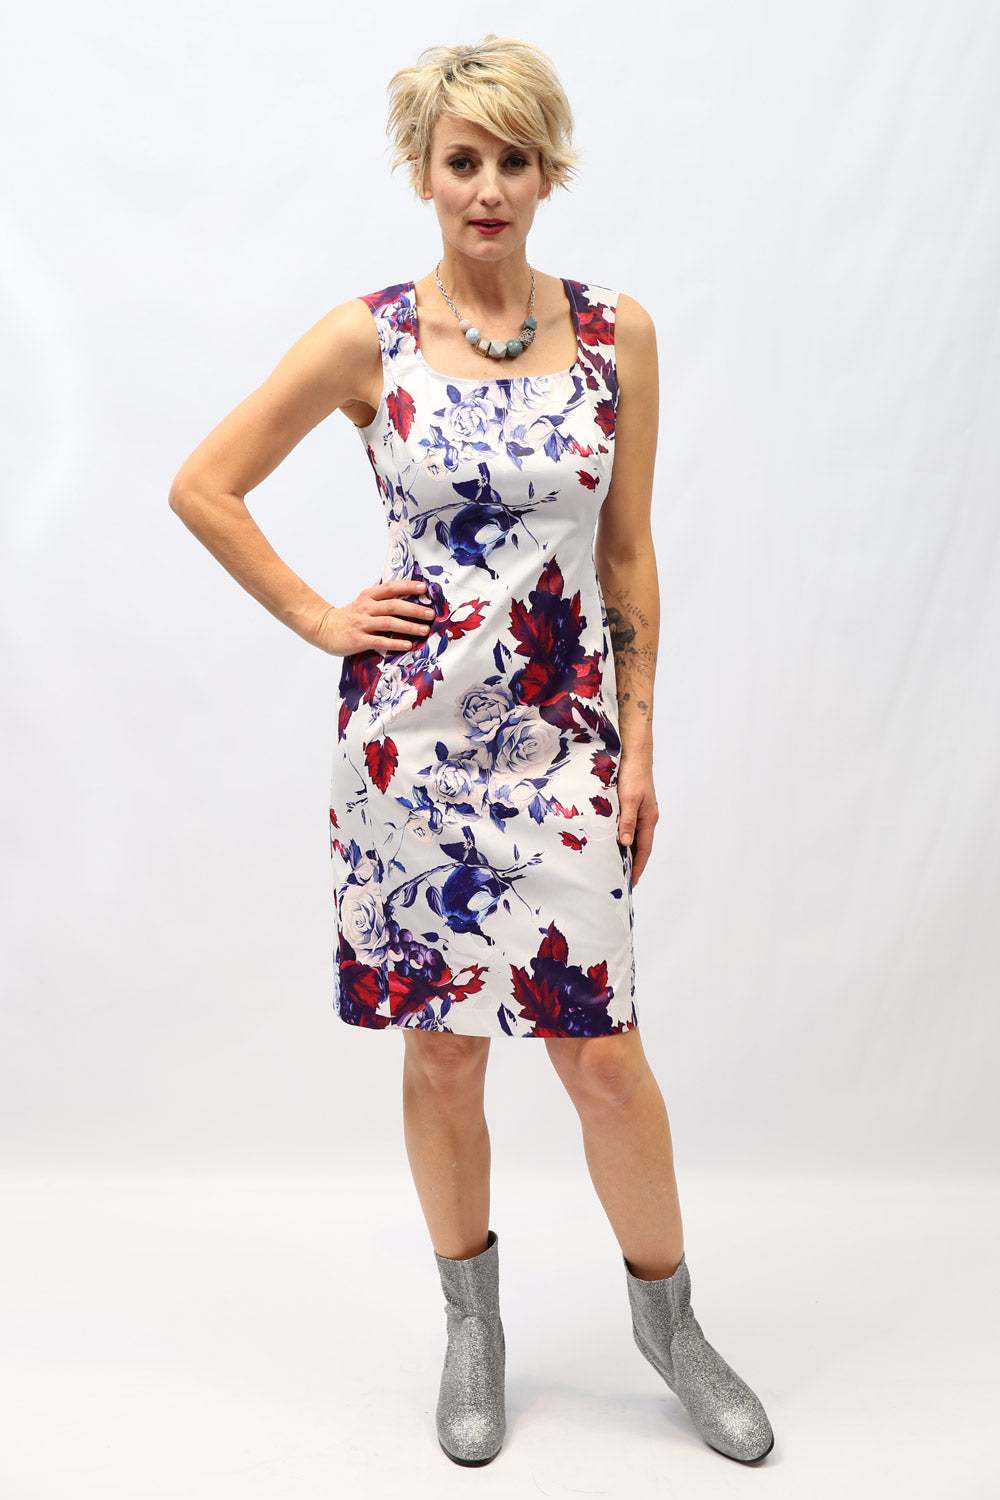 Bethany Cara Dress | Addicted to Life | Dresses | Summer Collection | Fashion Design | Annah Stretton | New Zealand Fashion Designer